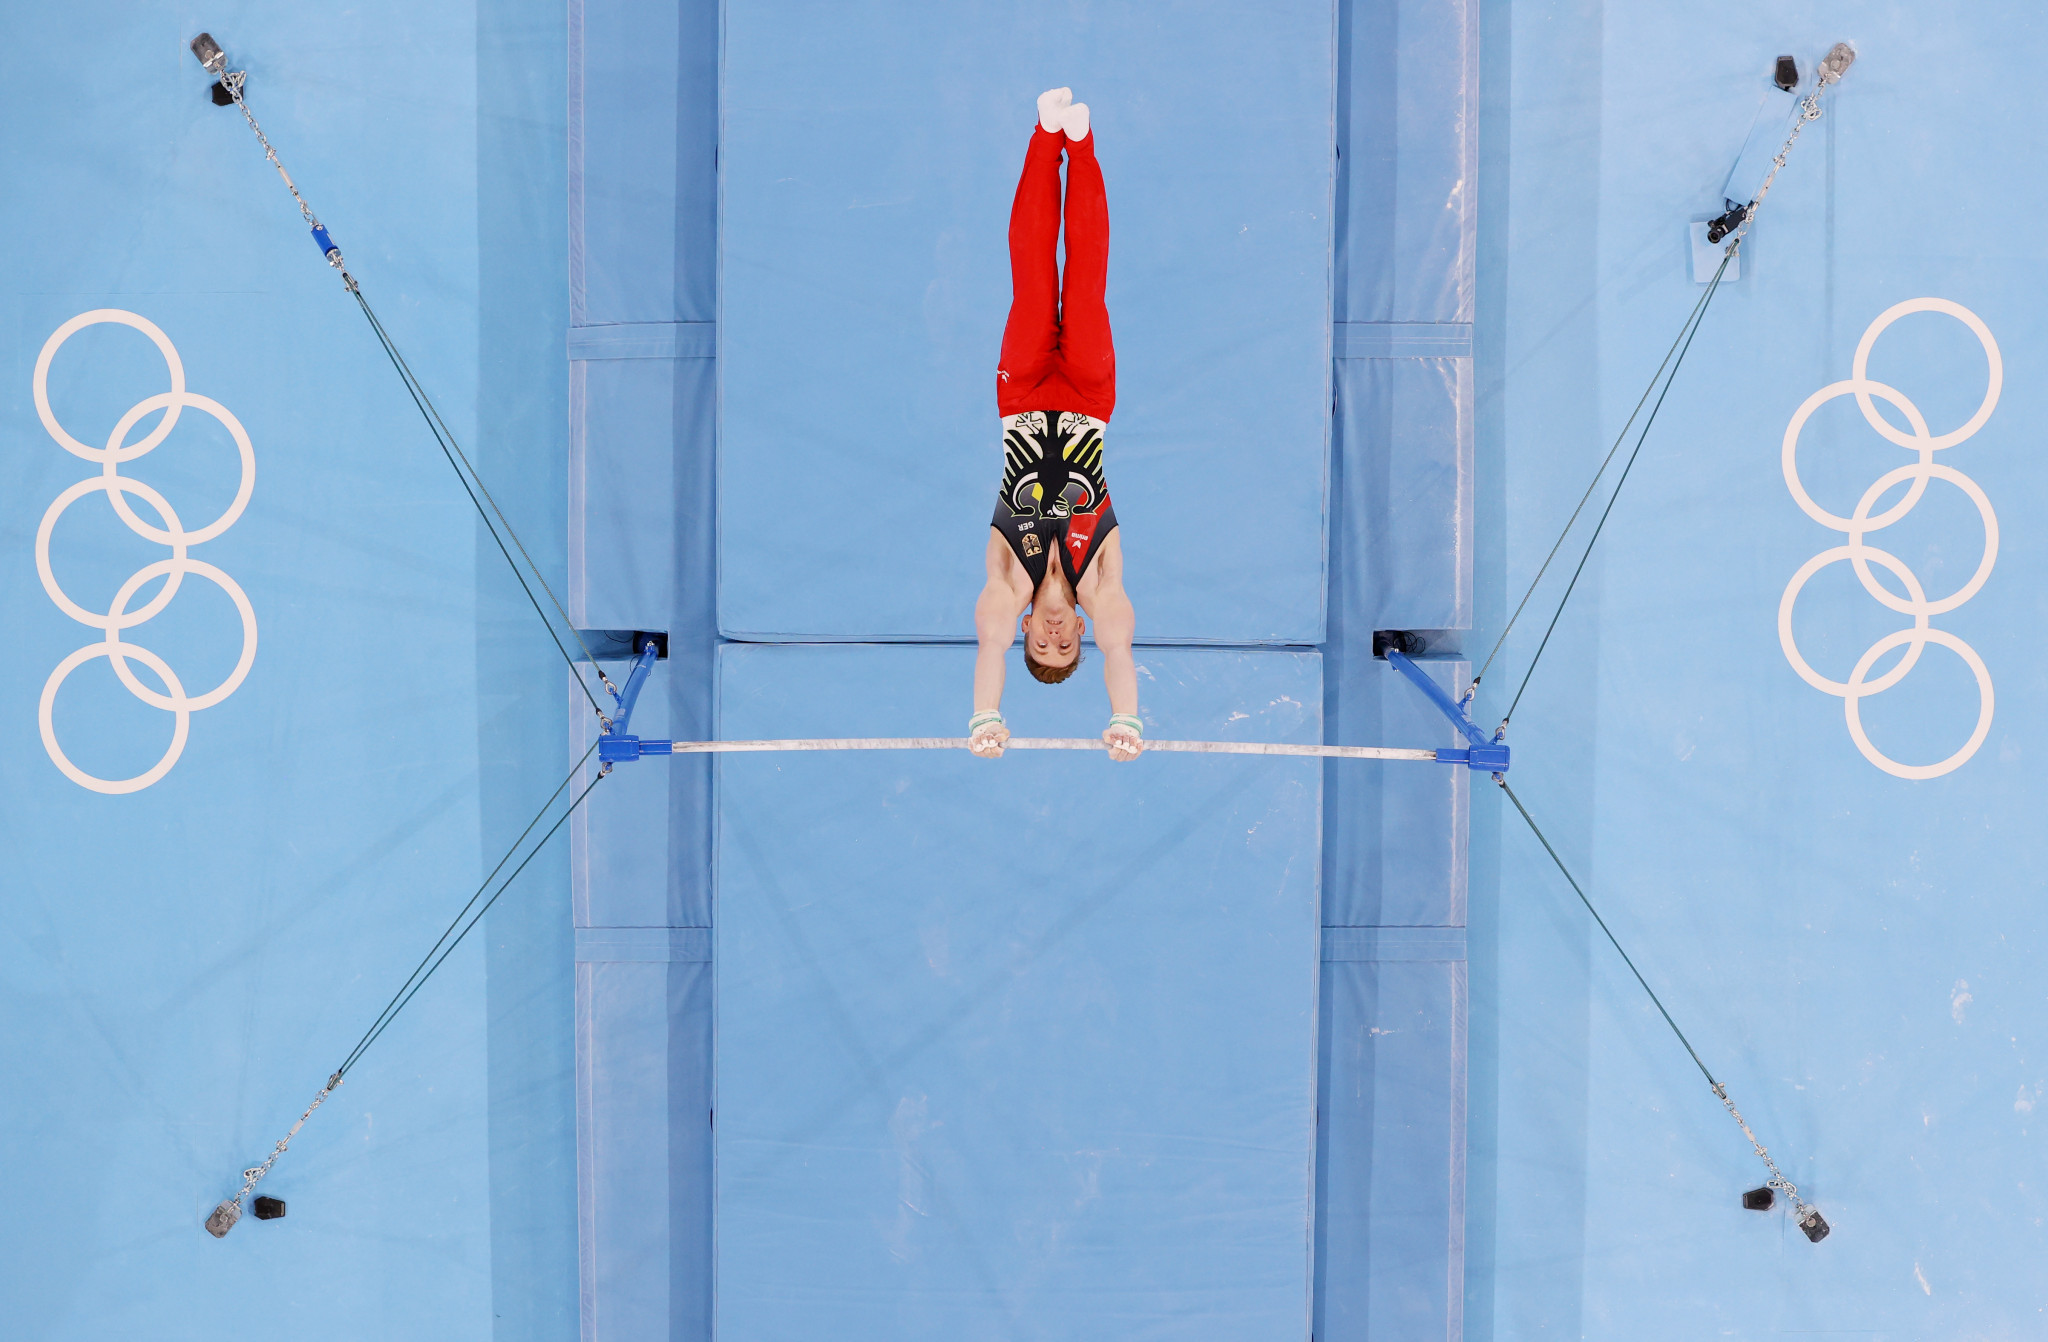 Nils Dunkel of Germany competes on the horizontal bar during the men's qualification round ©Getty Images